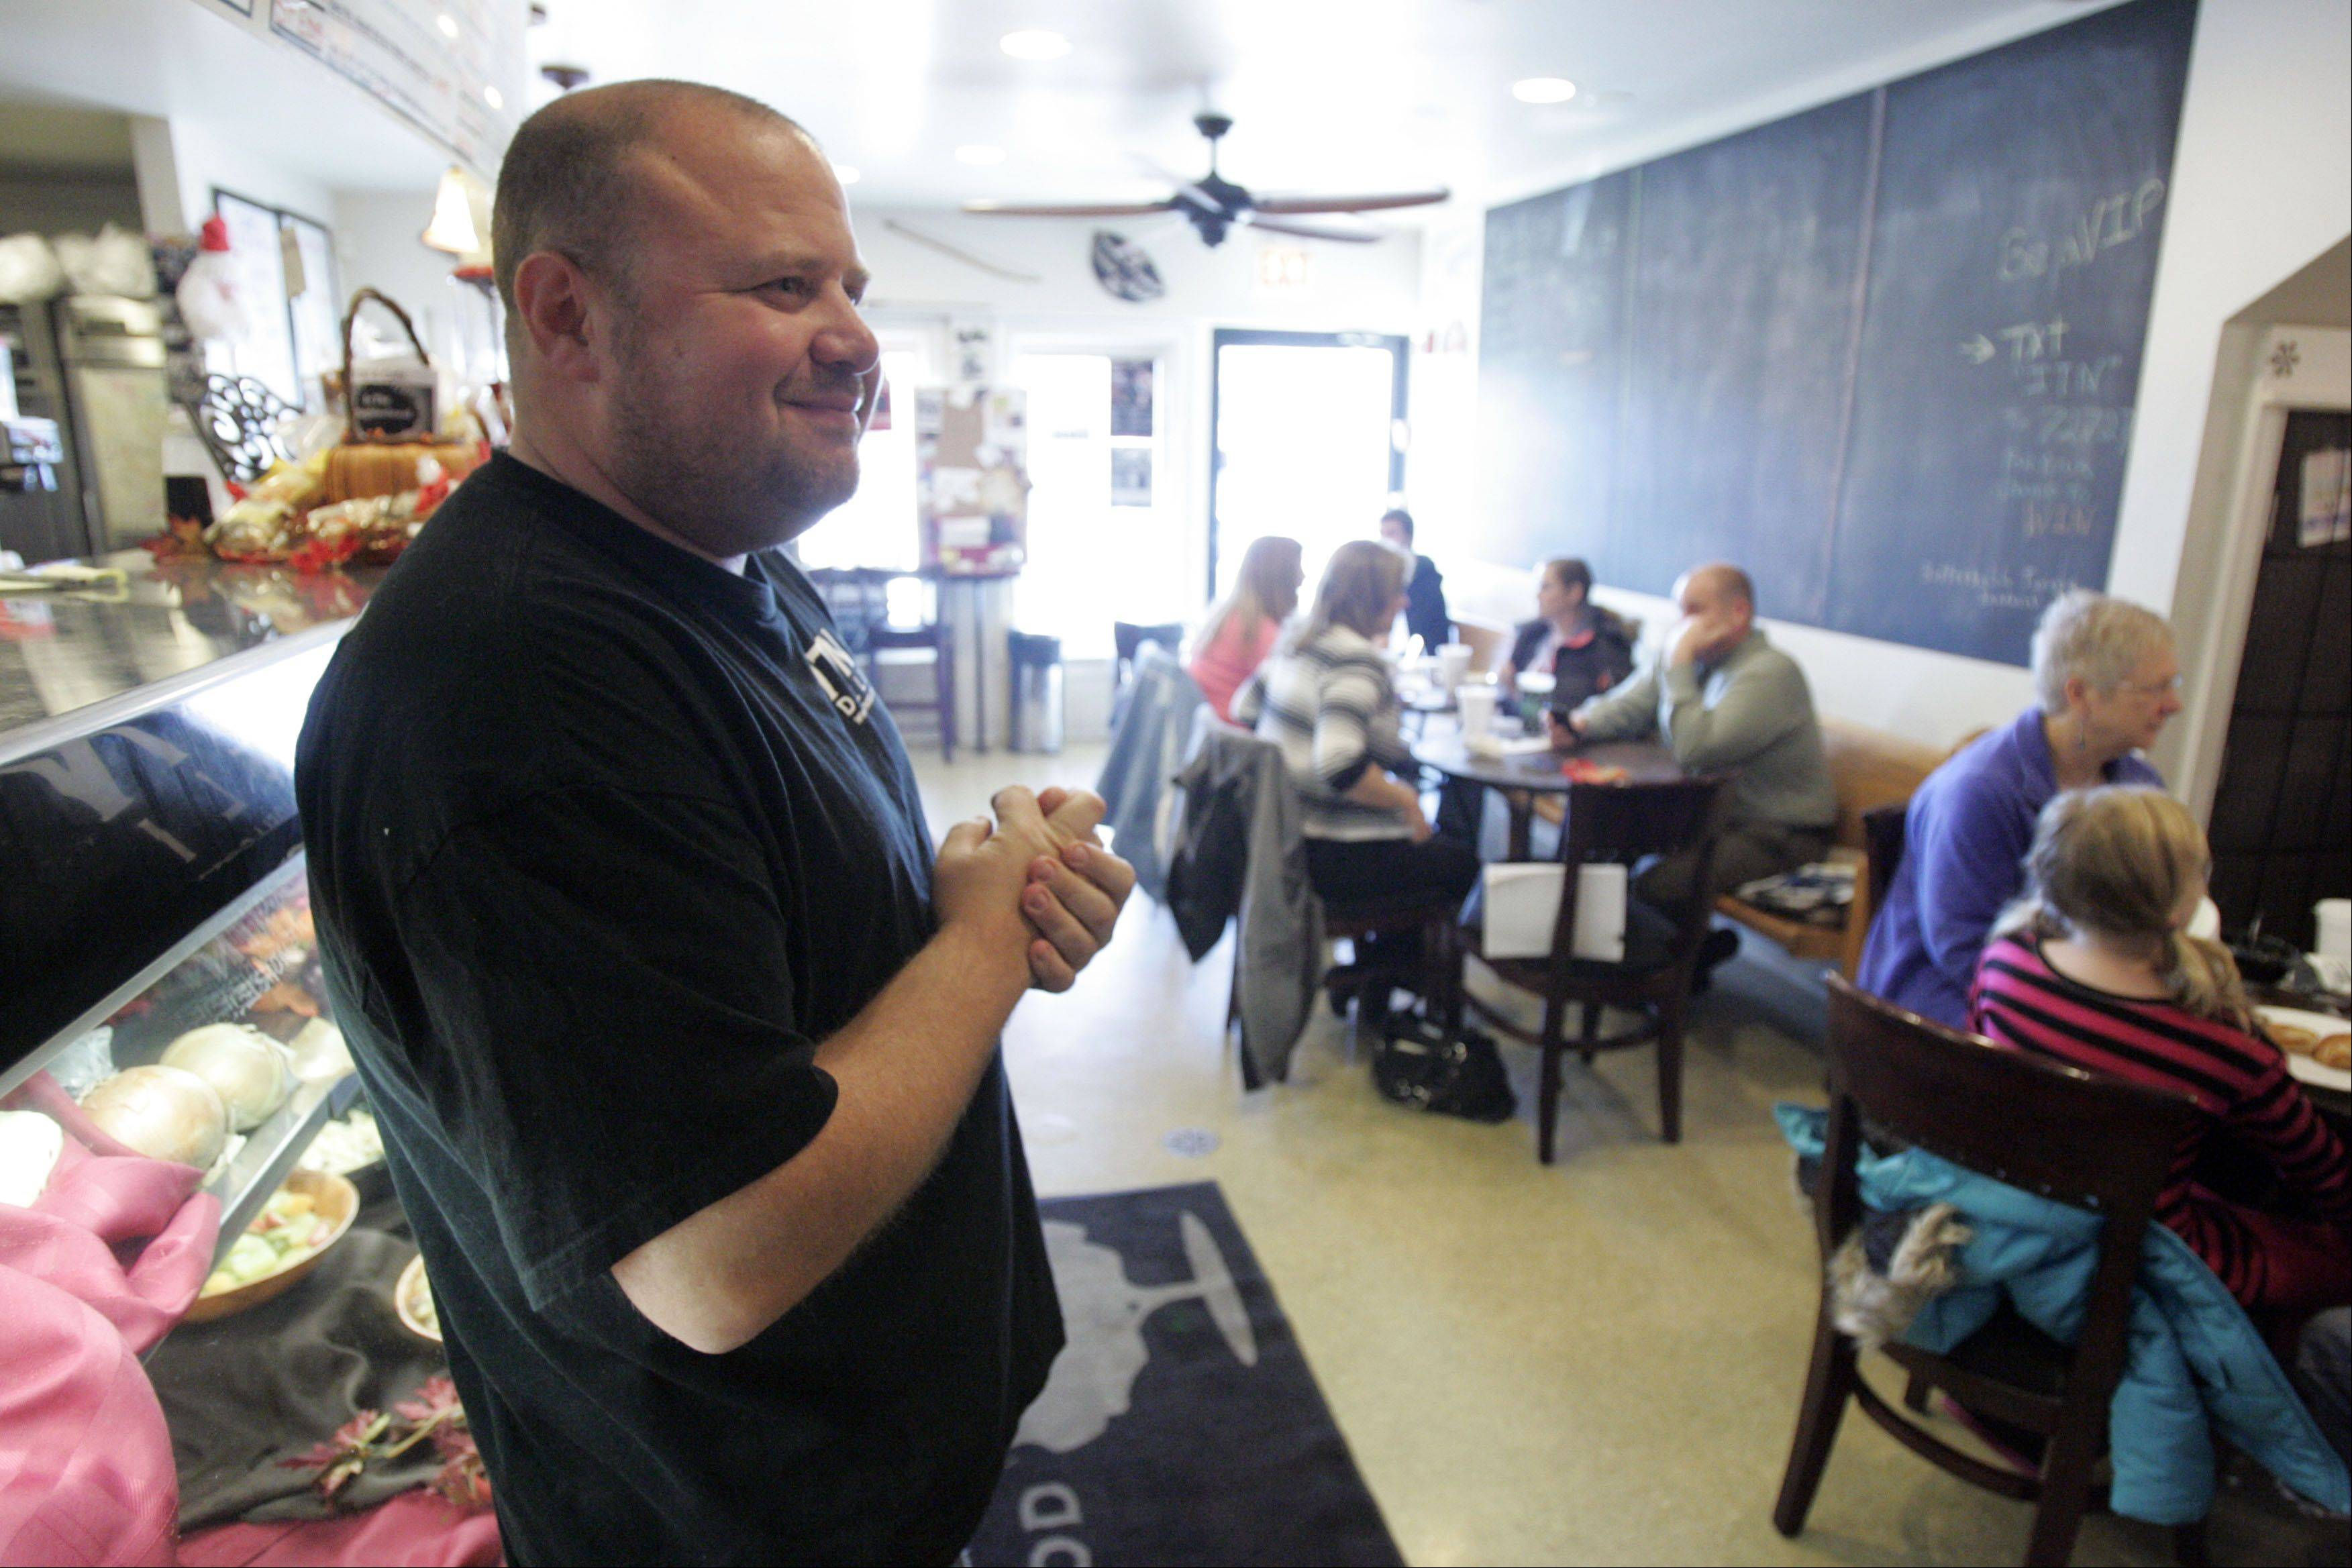 Jeff Turner's In the Neighborhood Deli has become a gathering place for many people to enjoy good food and good company. Turner, known in Elgin for his service to the community and the free holiday dinners he organizes, was named one of the 10 Outstanding Young People of 2012 by the Illinois Jaycees.